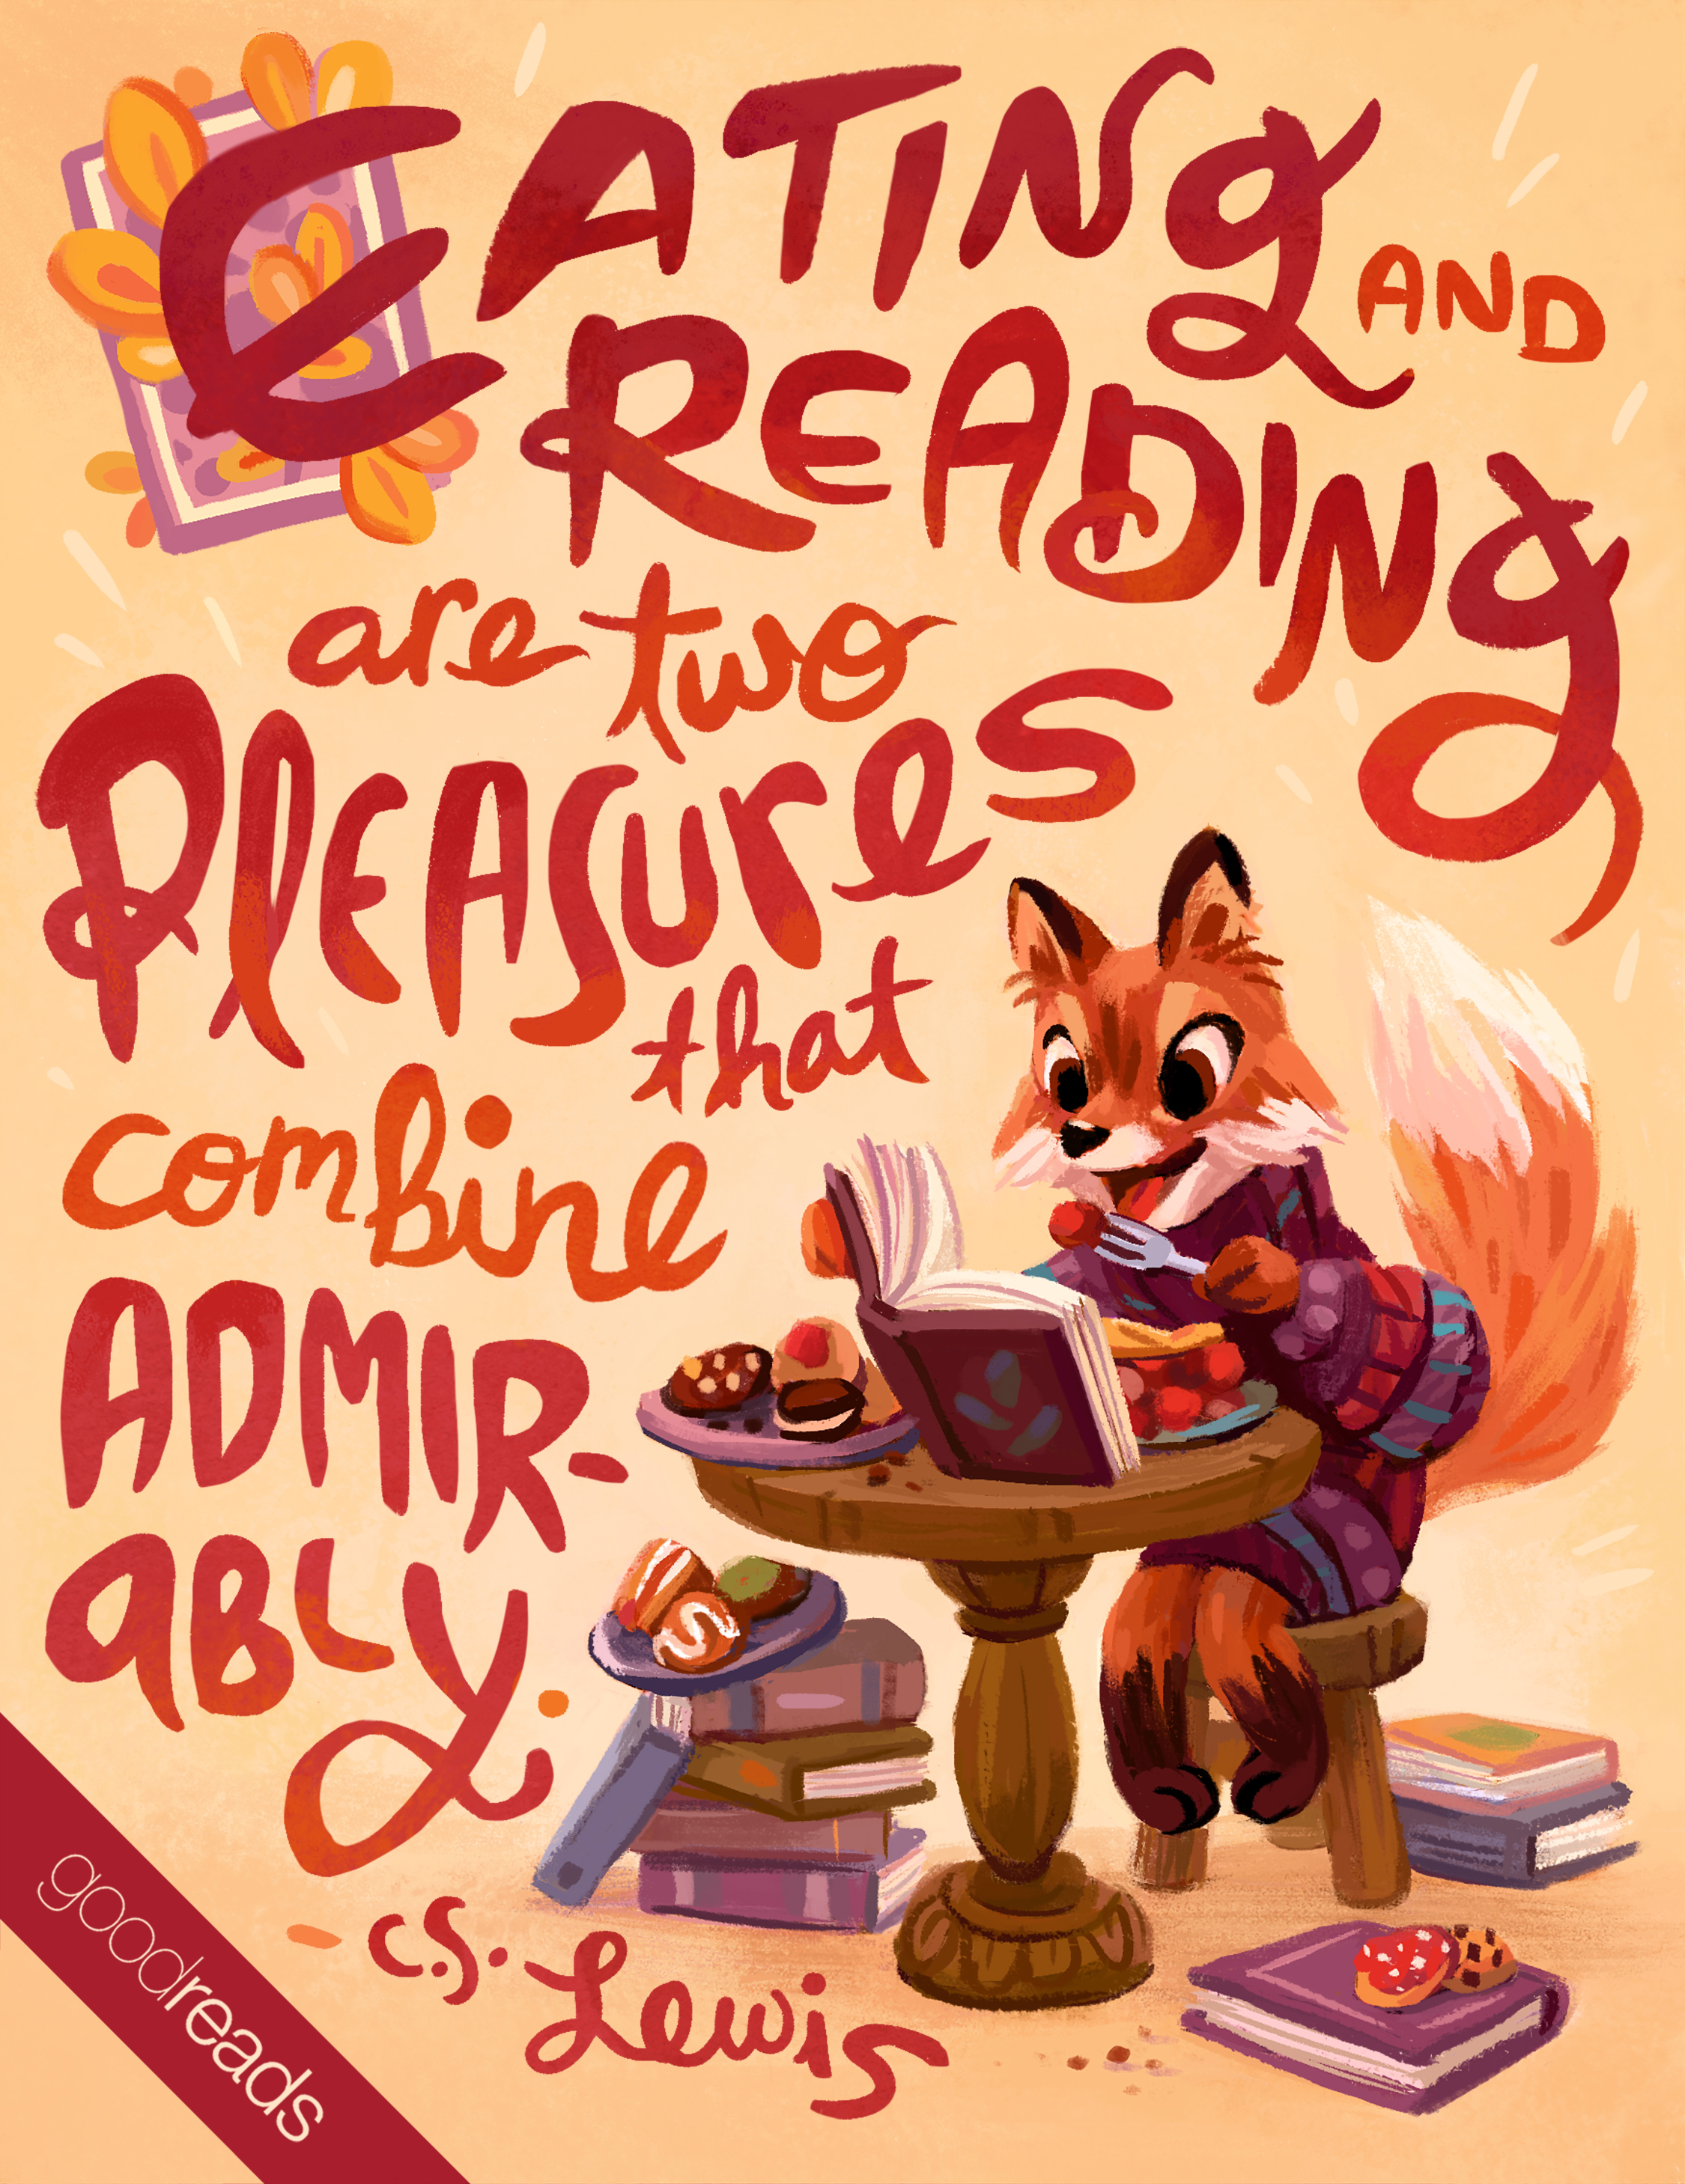 goodreads ya illustrated quote